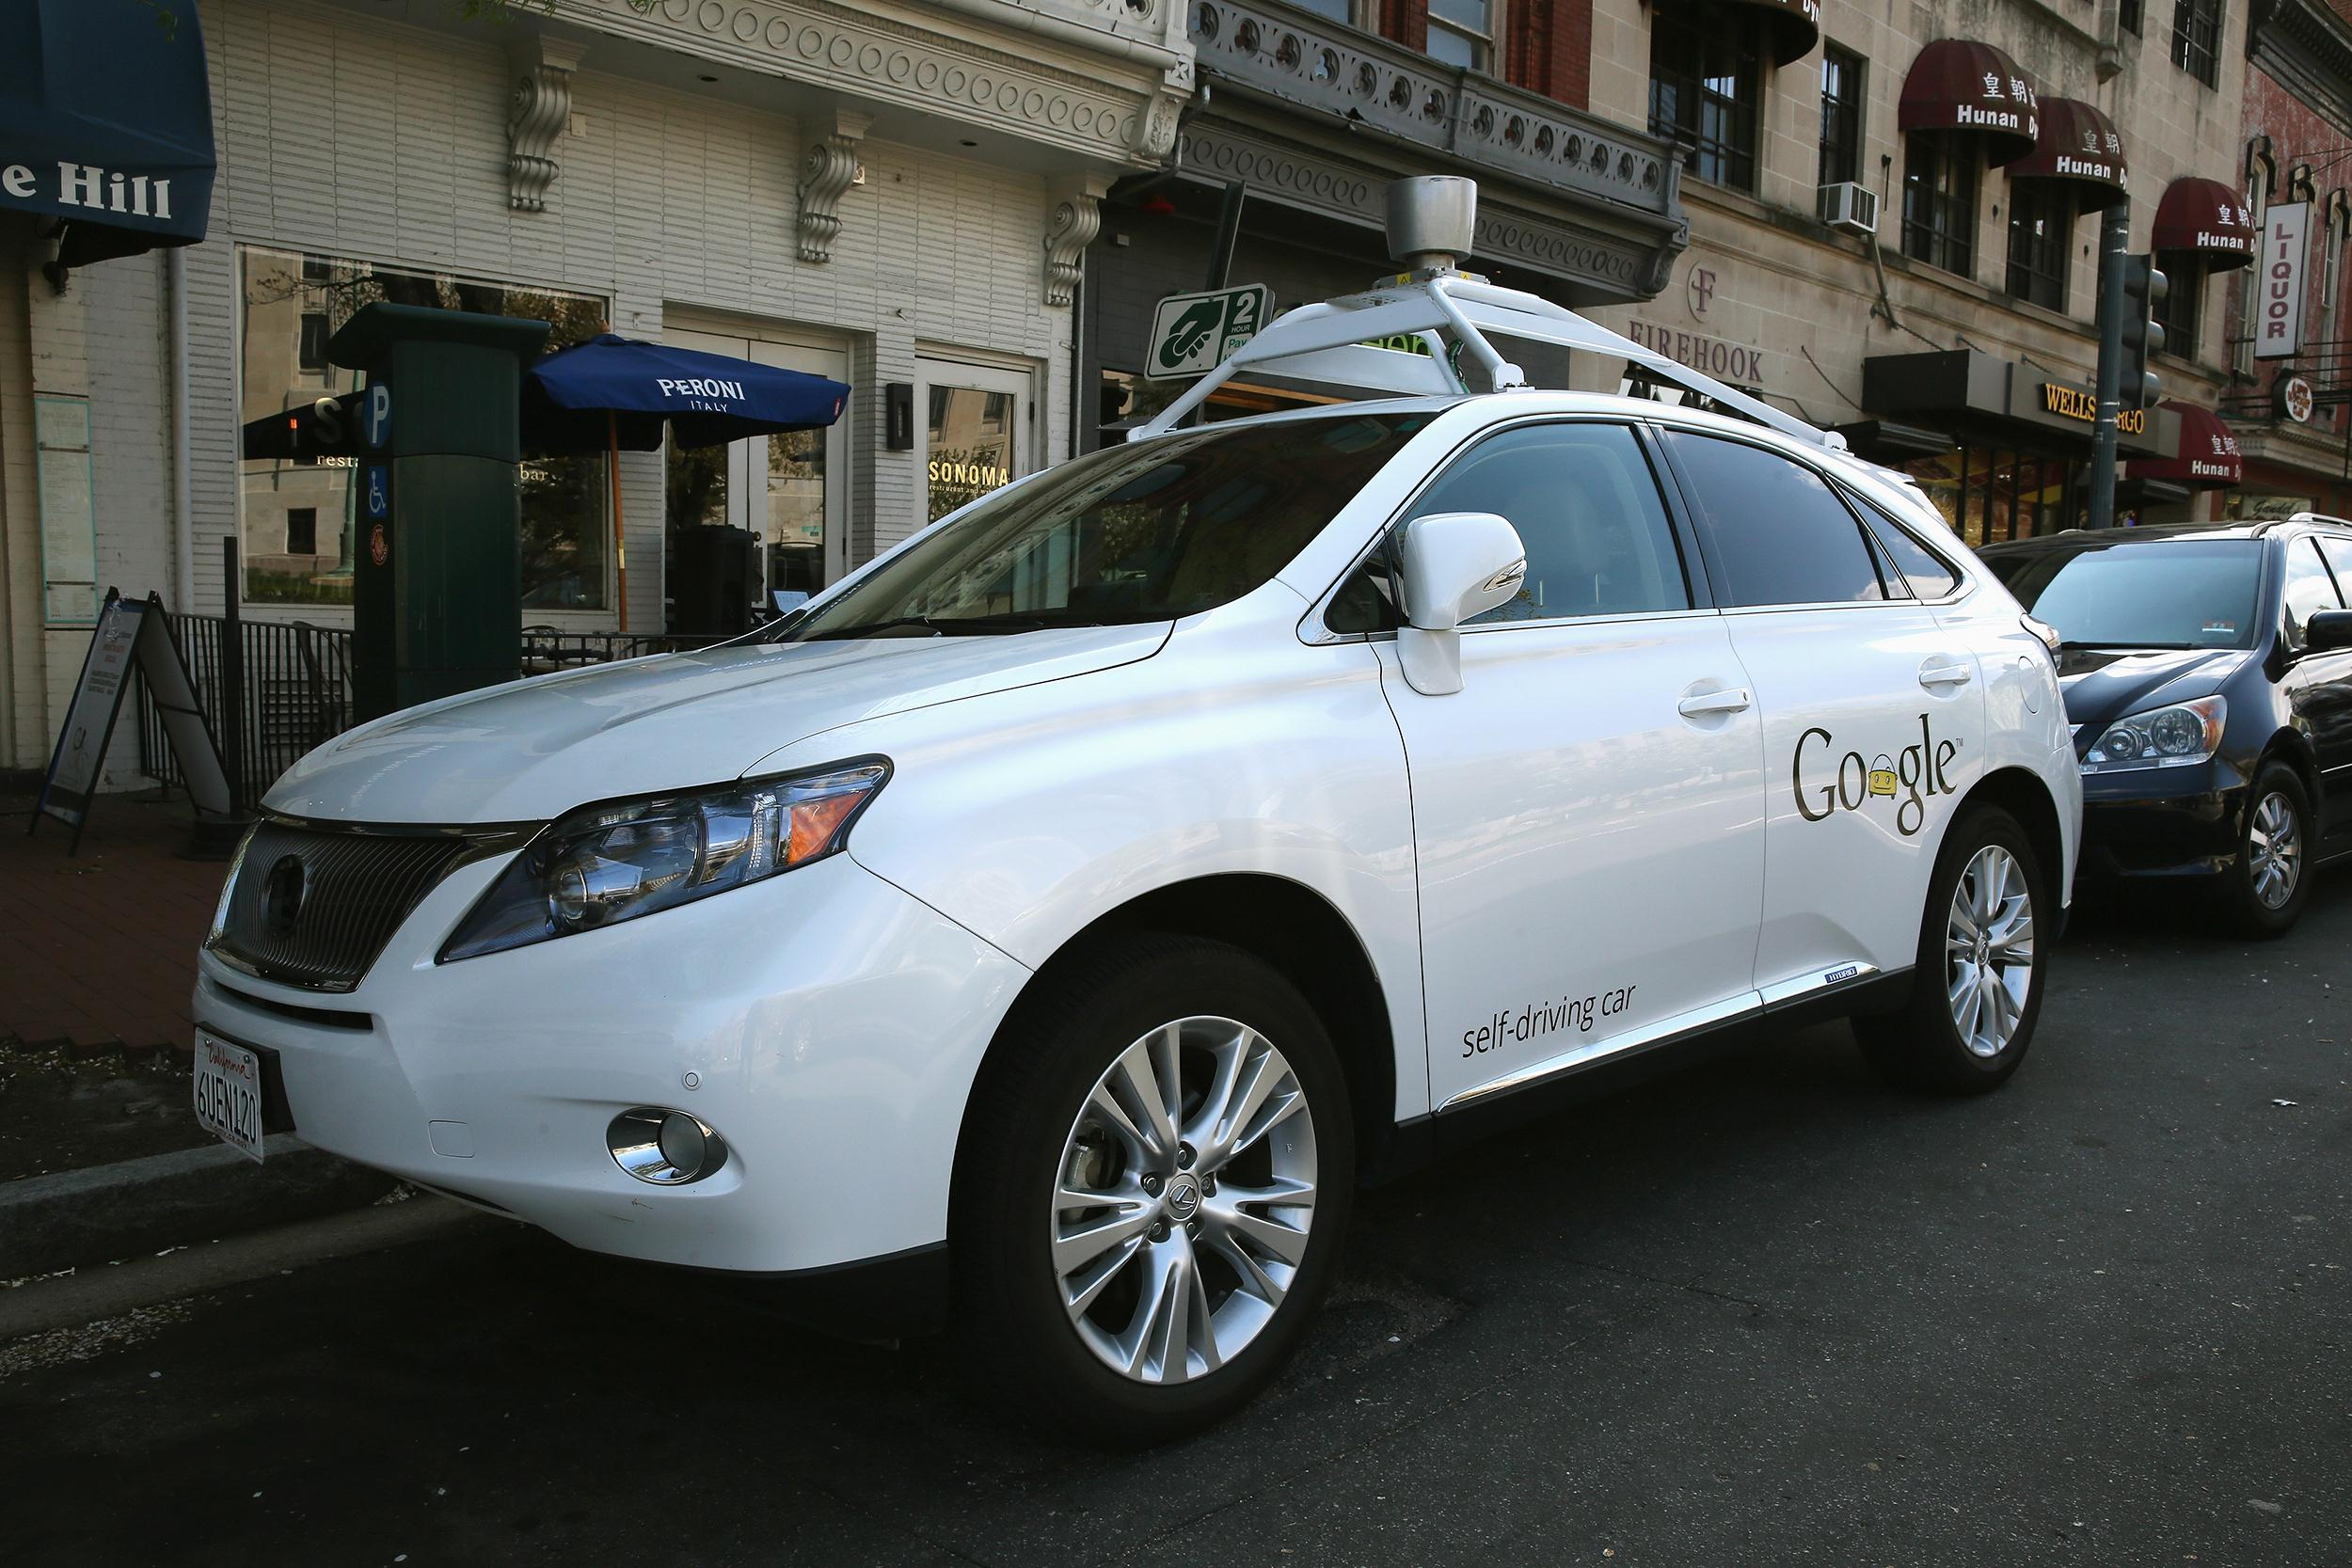 The Zone August 2014 F12 Selfdriving Gps Following Car Embedded Systems Learning In California And Nevada Google Engineers Have Already Tested Self Driving Cars On More Than 200000 Miles 321869 Kilometers Of Public Highways